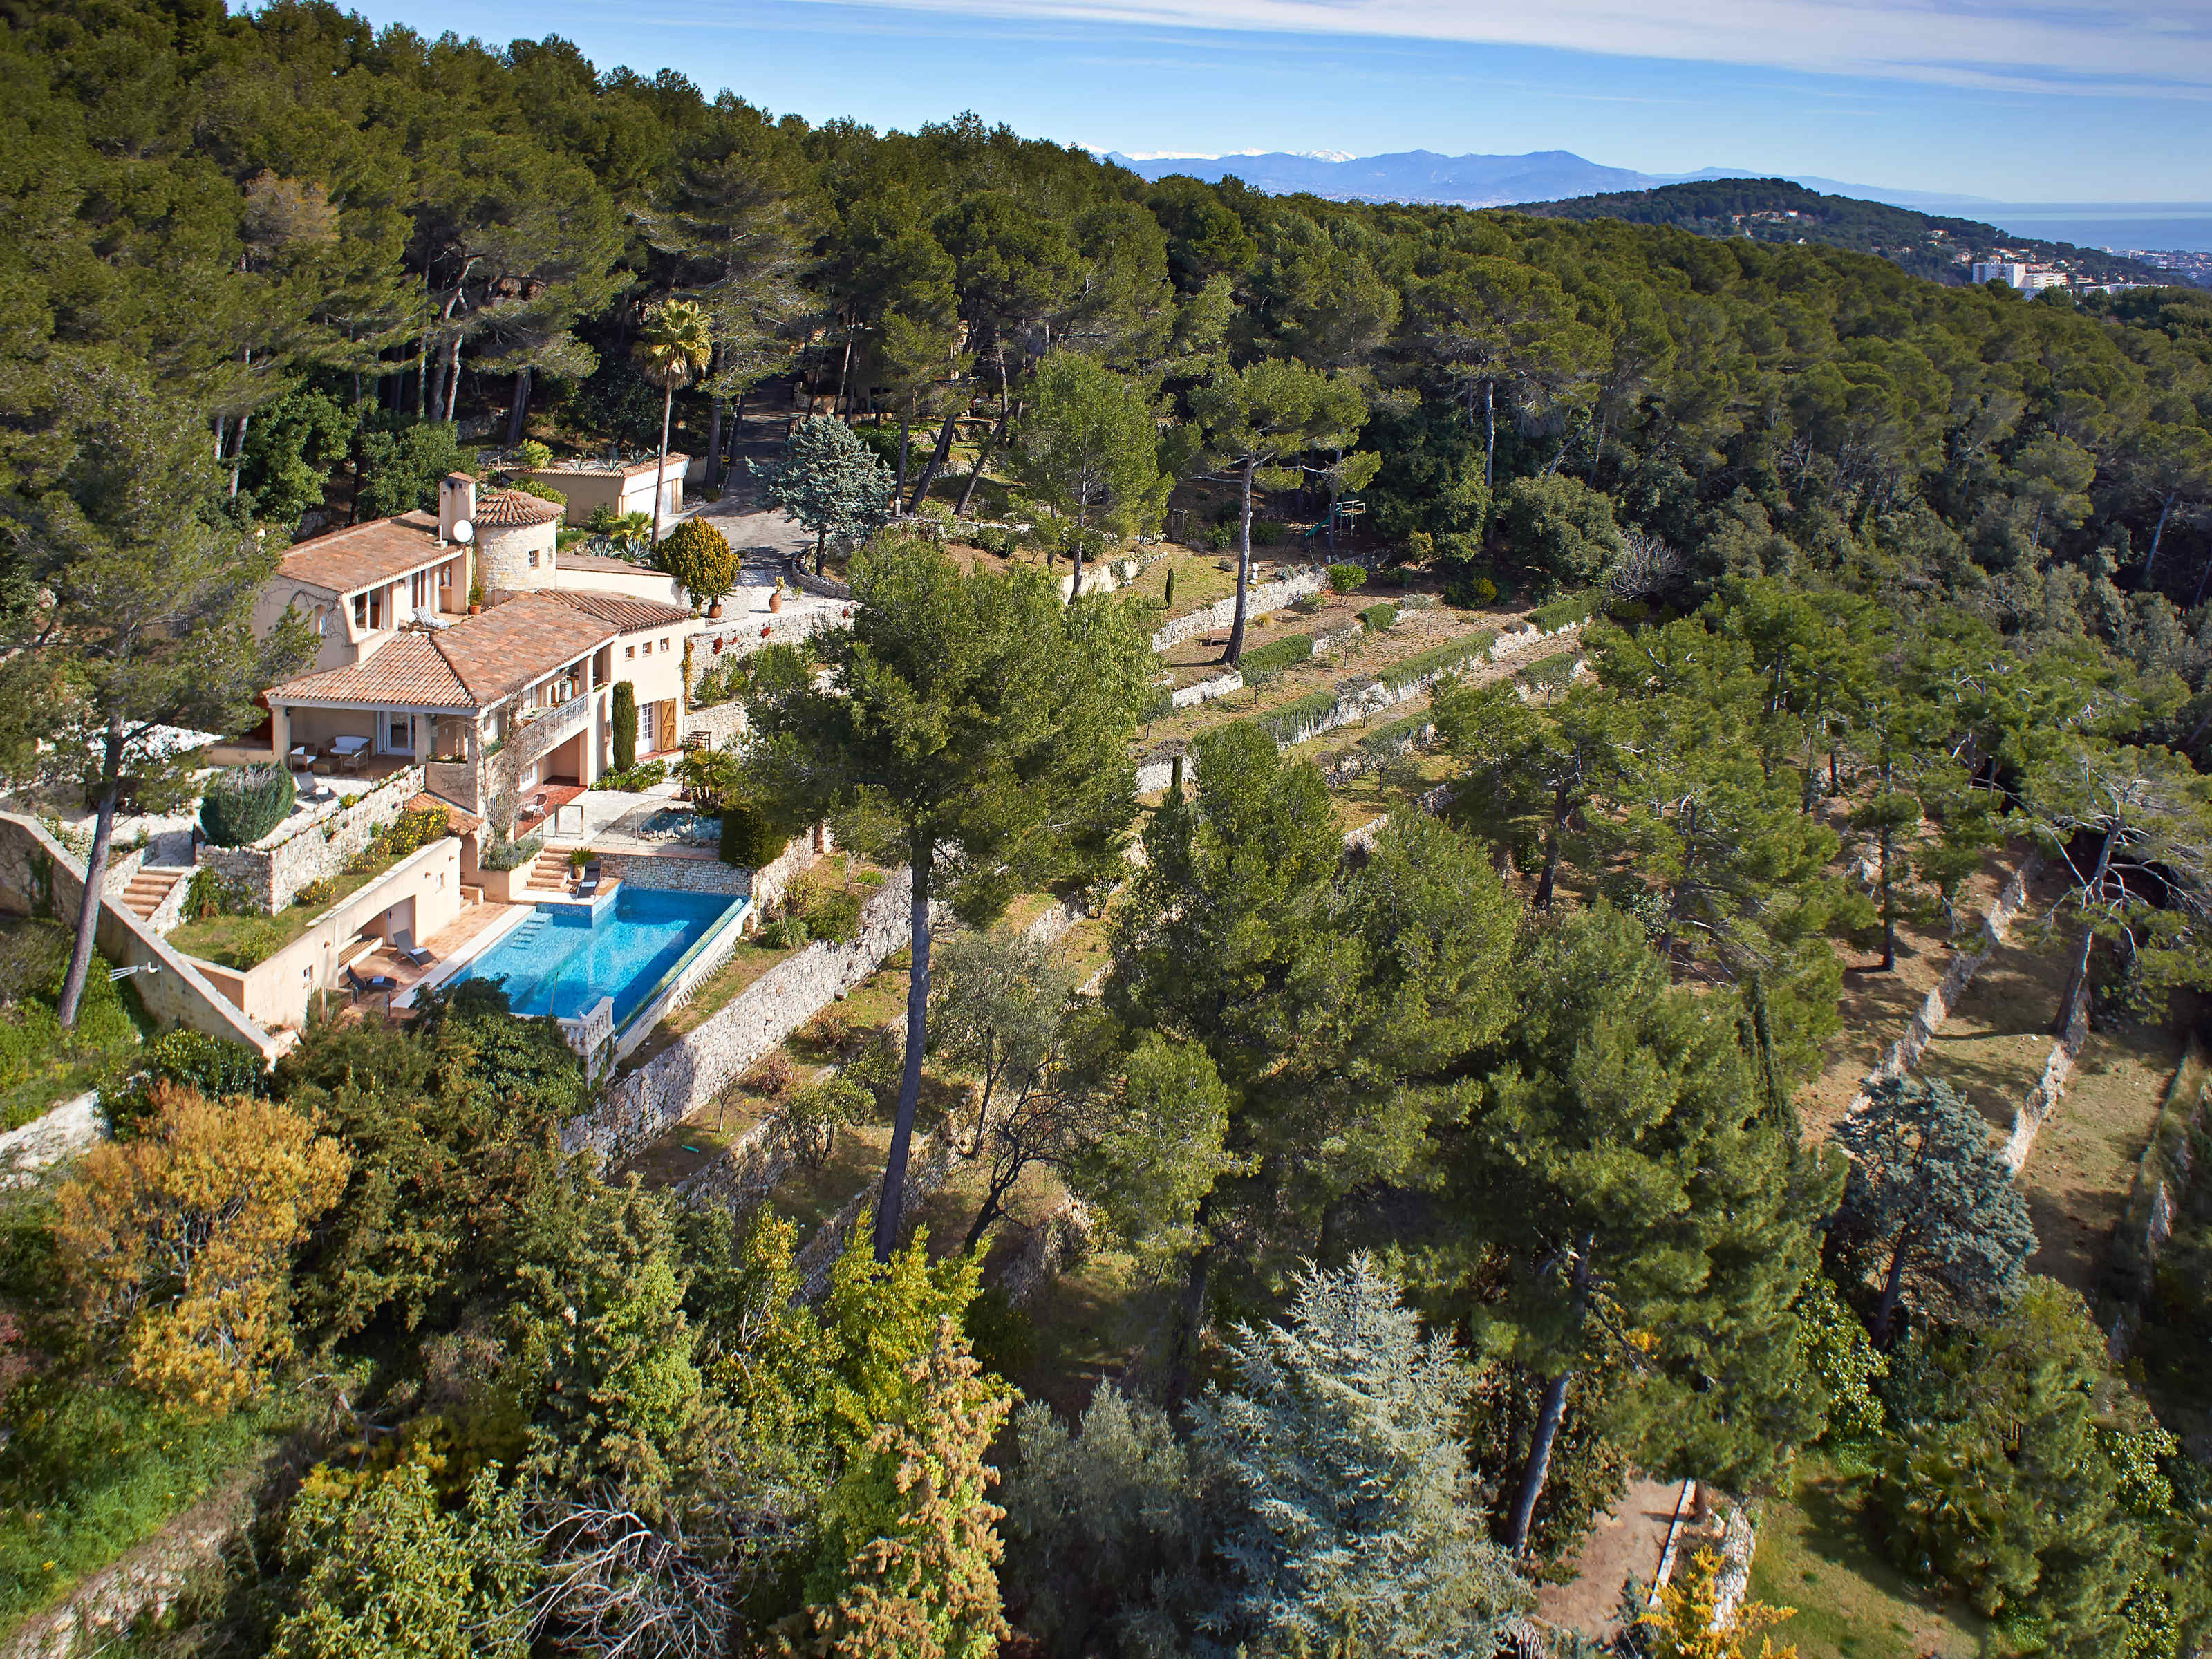 Single Family Home for Sale at Provencal Villa set on 2.5 Hectares with Panoramic Sea Views Cannes, Provence-Alpes-Cote D'Azur 06400 France